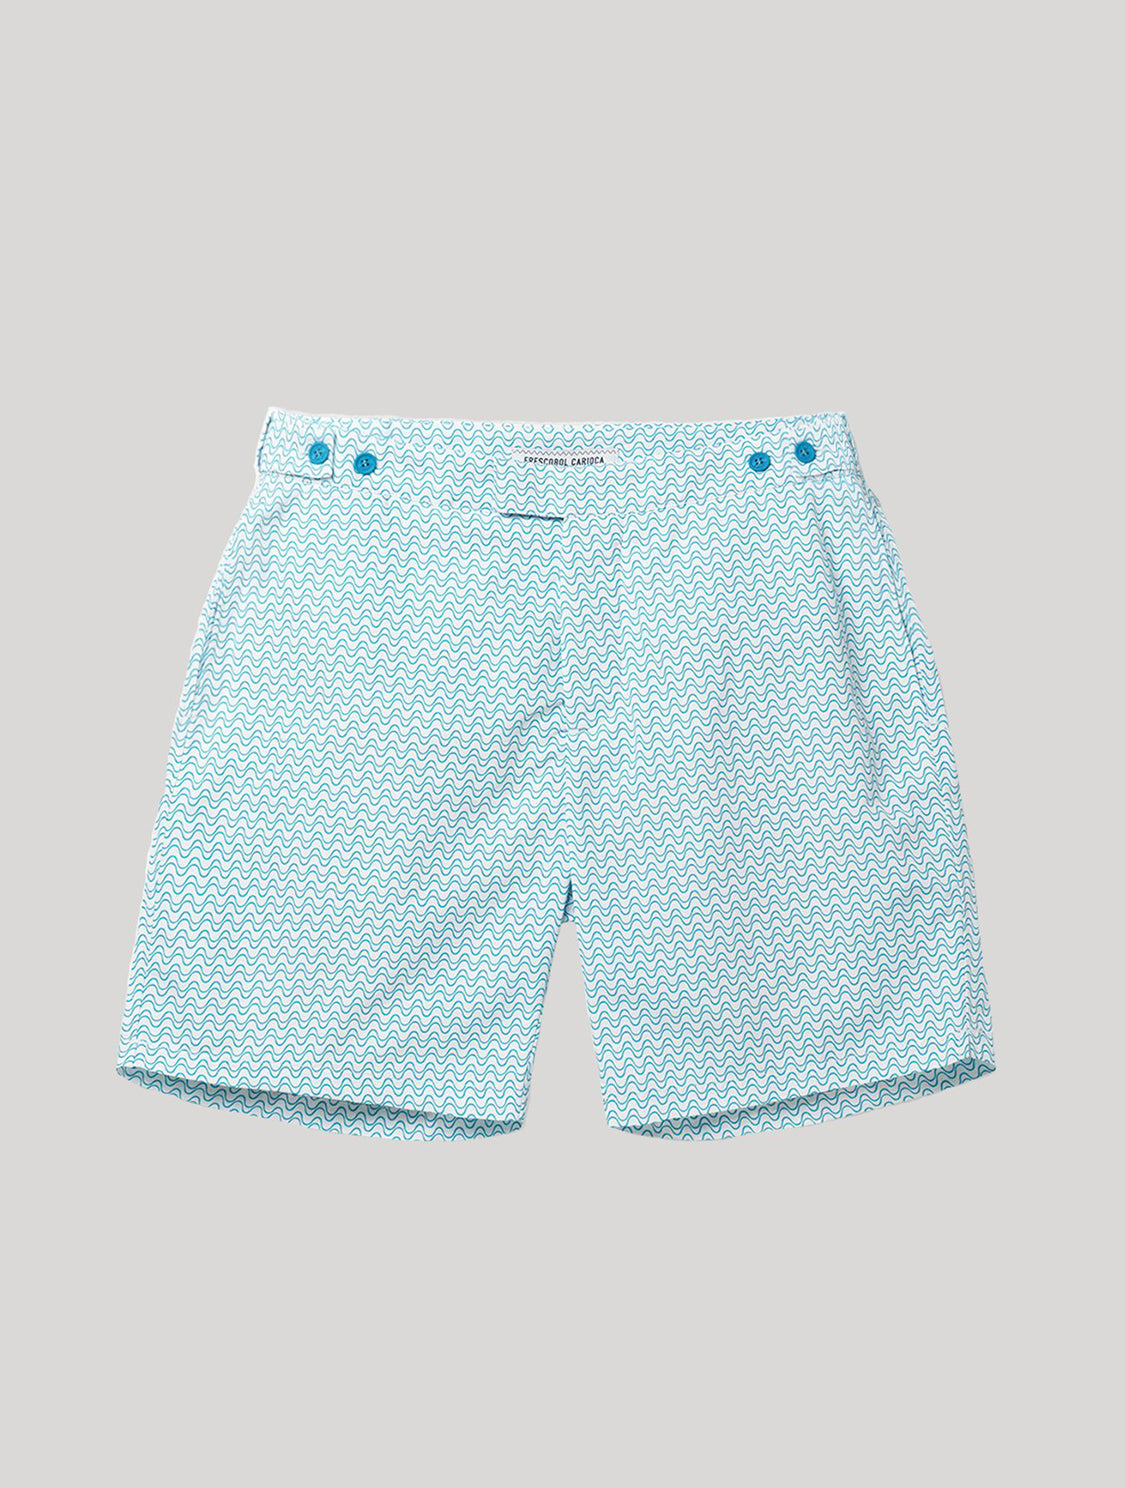 TAILORED SWIM SHORTS  WAVE PRINT